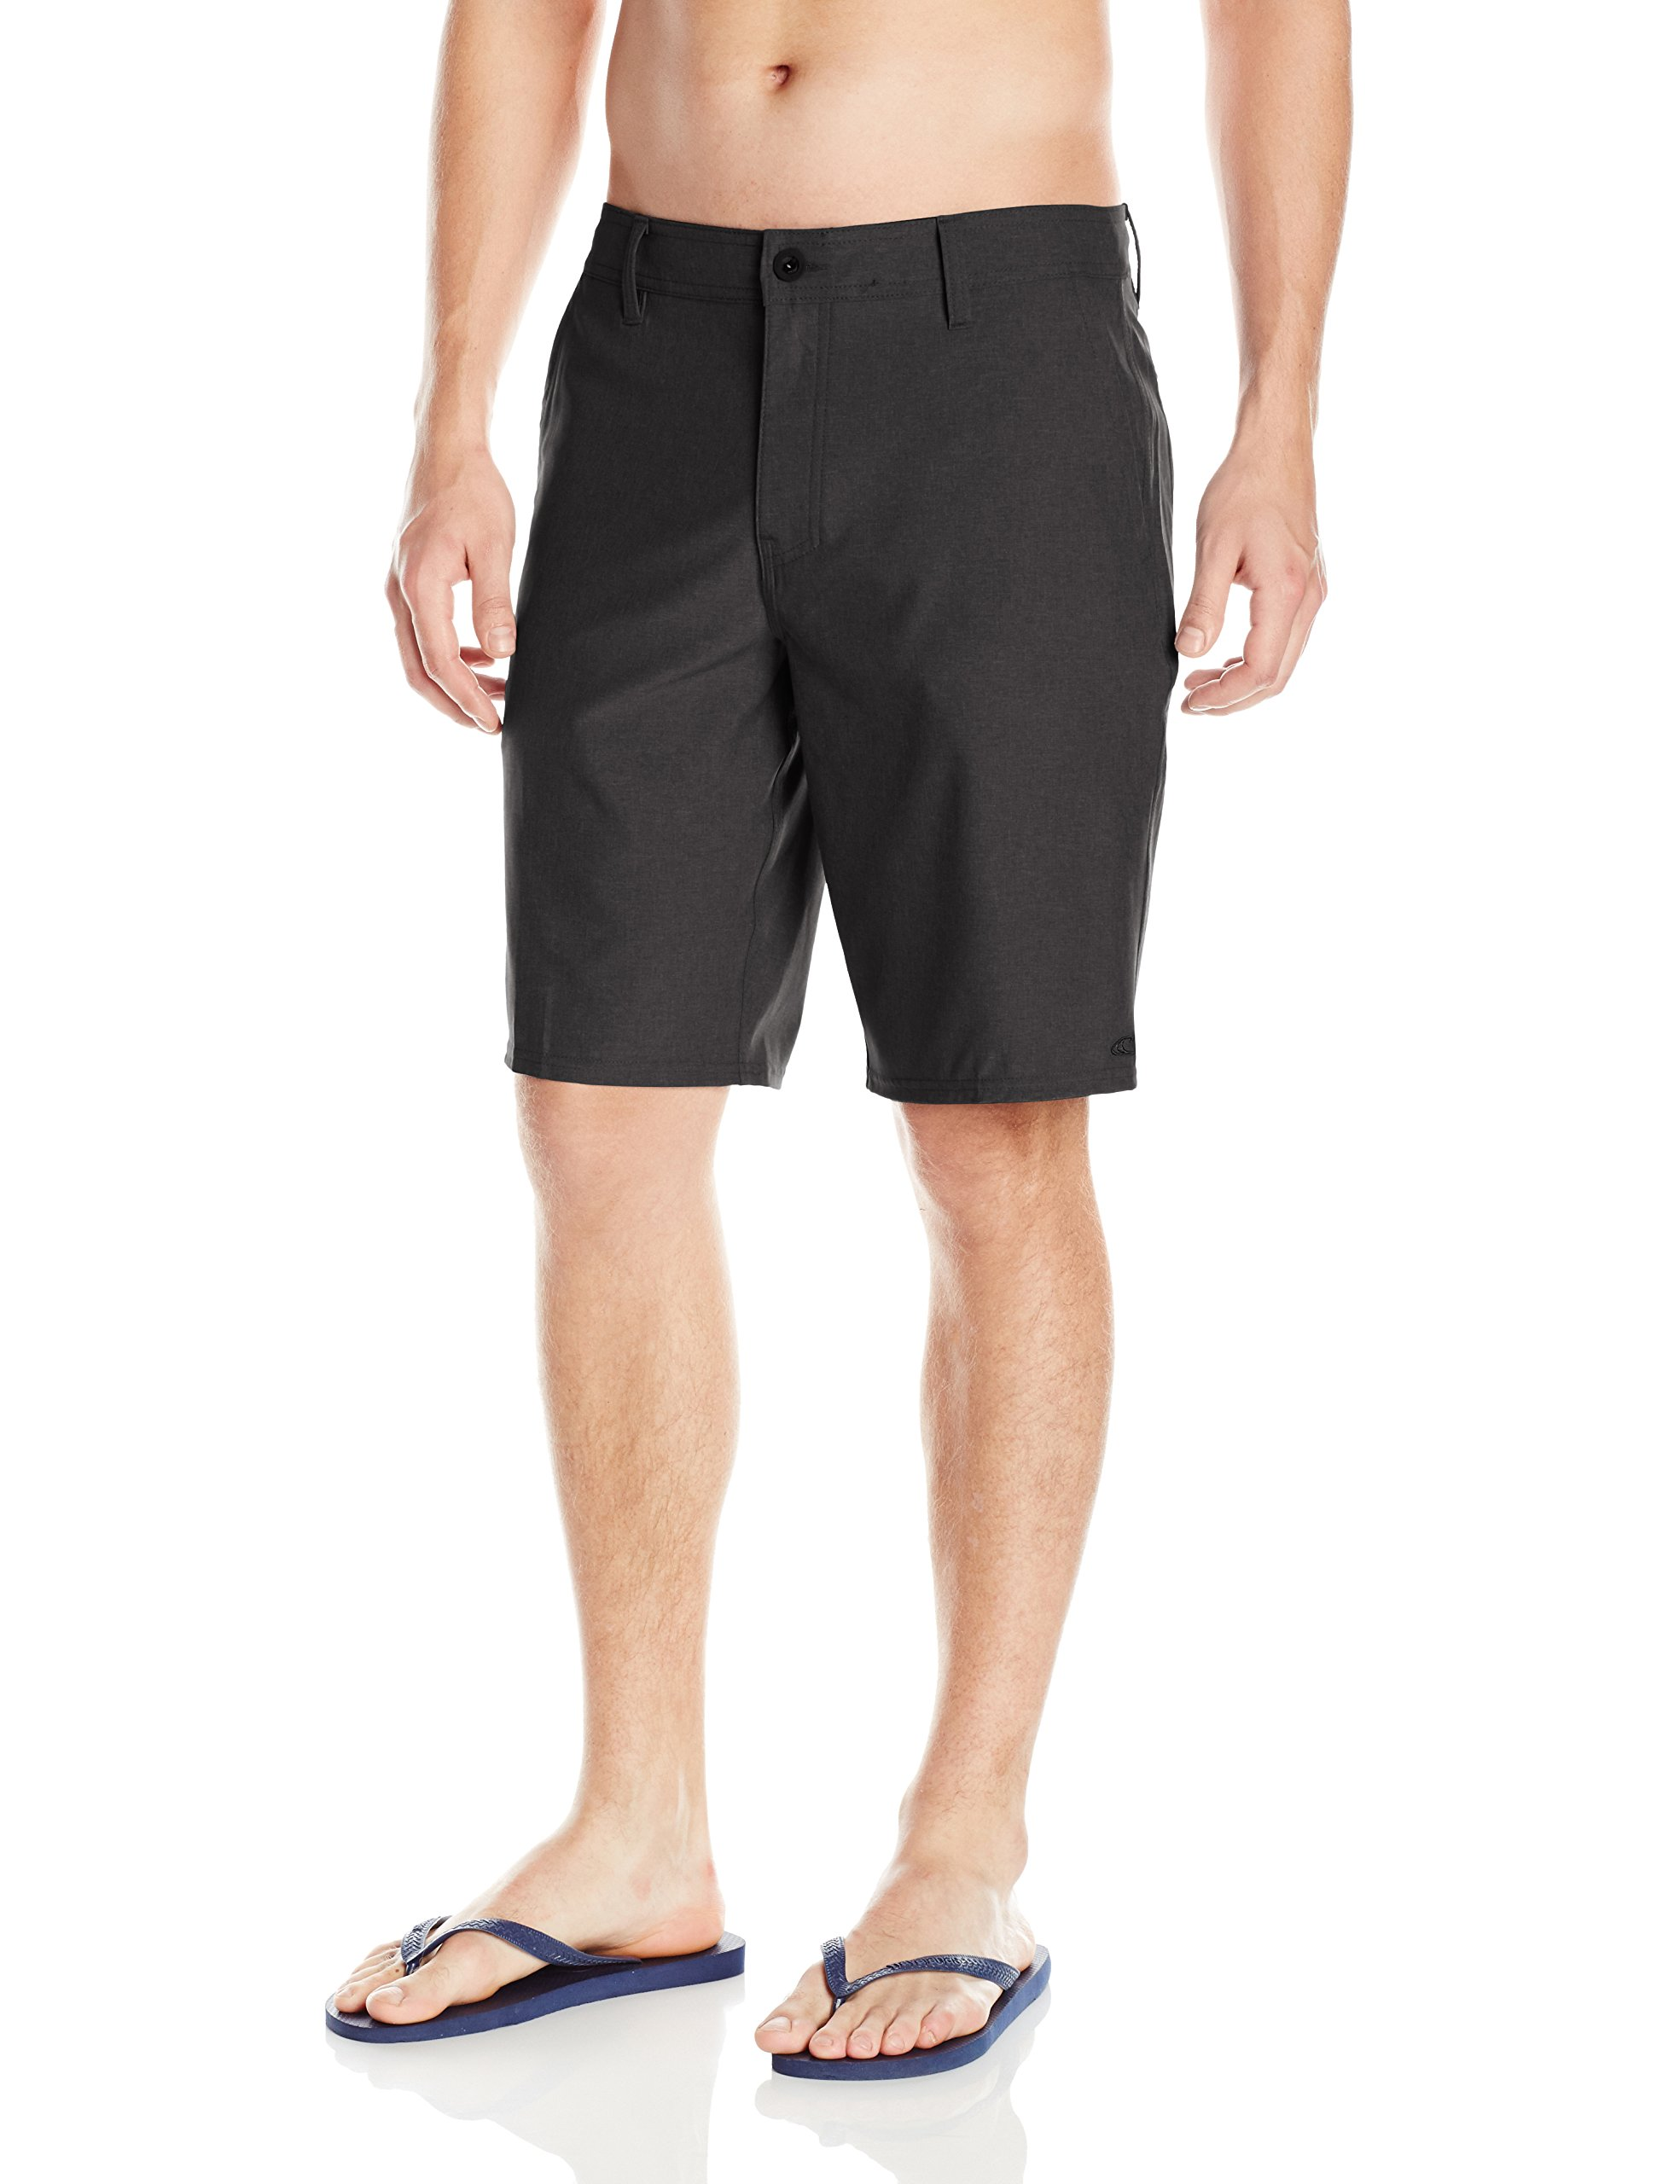 O'Neill Men's Loaded Quick Dry Stretch Hybrid Boardshort, Heather Black, 34